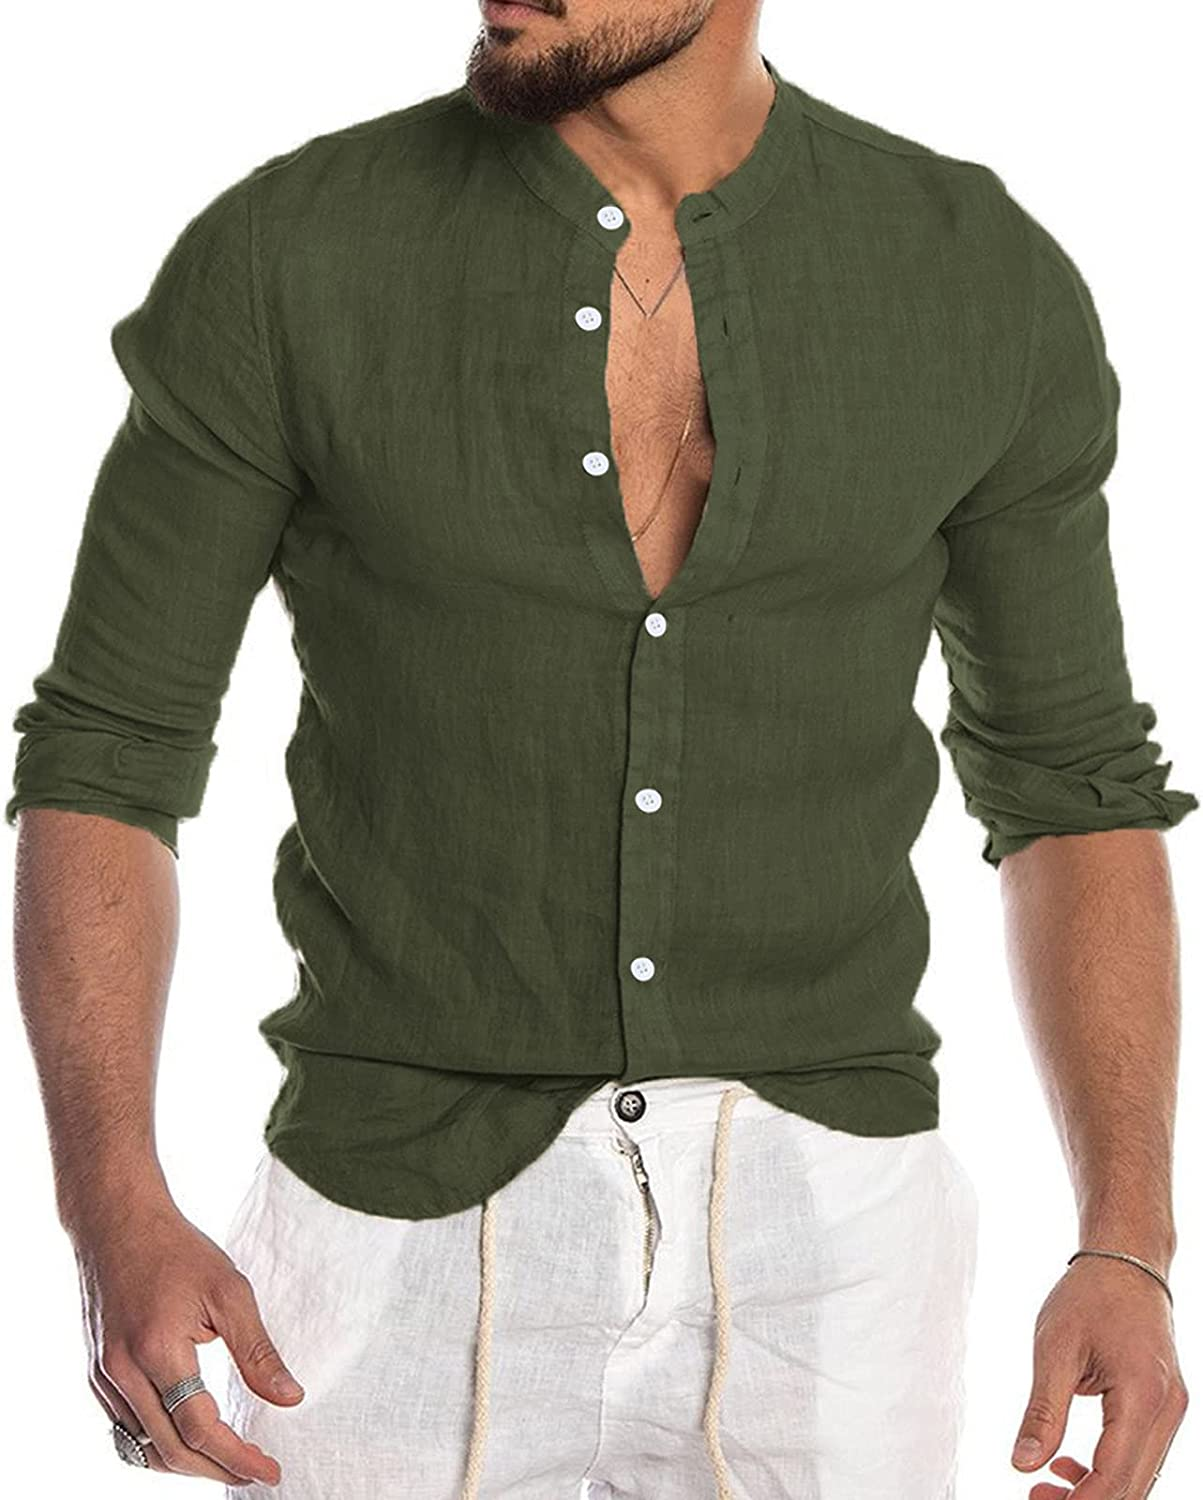 Long Sleeve Tee Shirts for Men Button Cotton Linen Shirt Fashion Casual Solid Color Collar Cardigan Long Sleeve Top